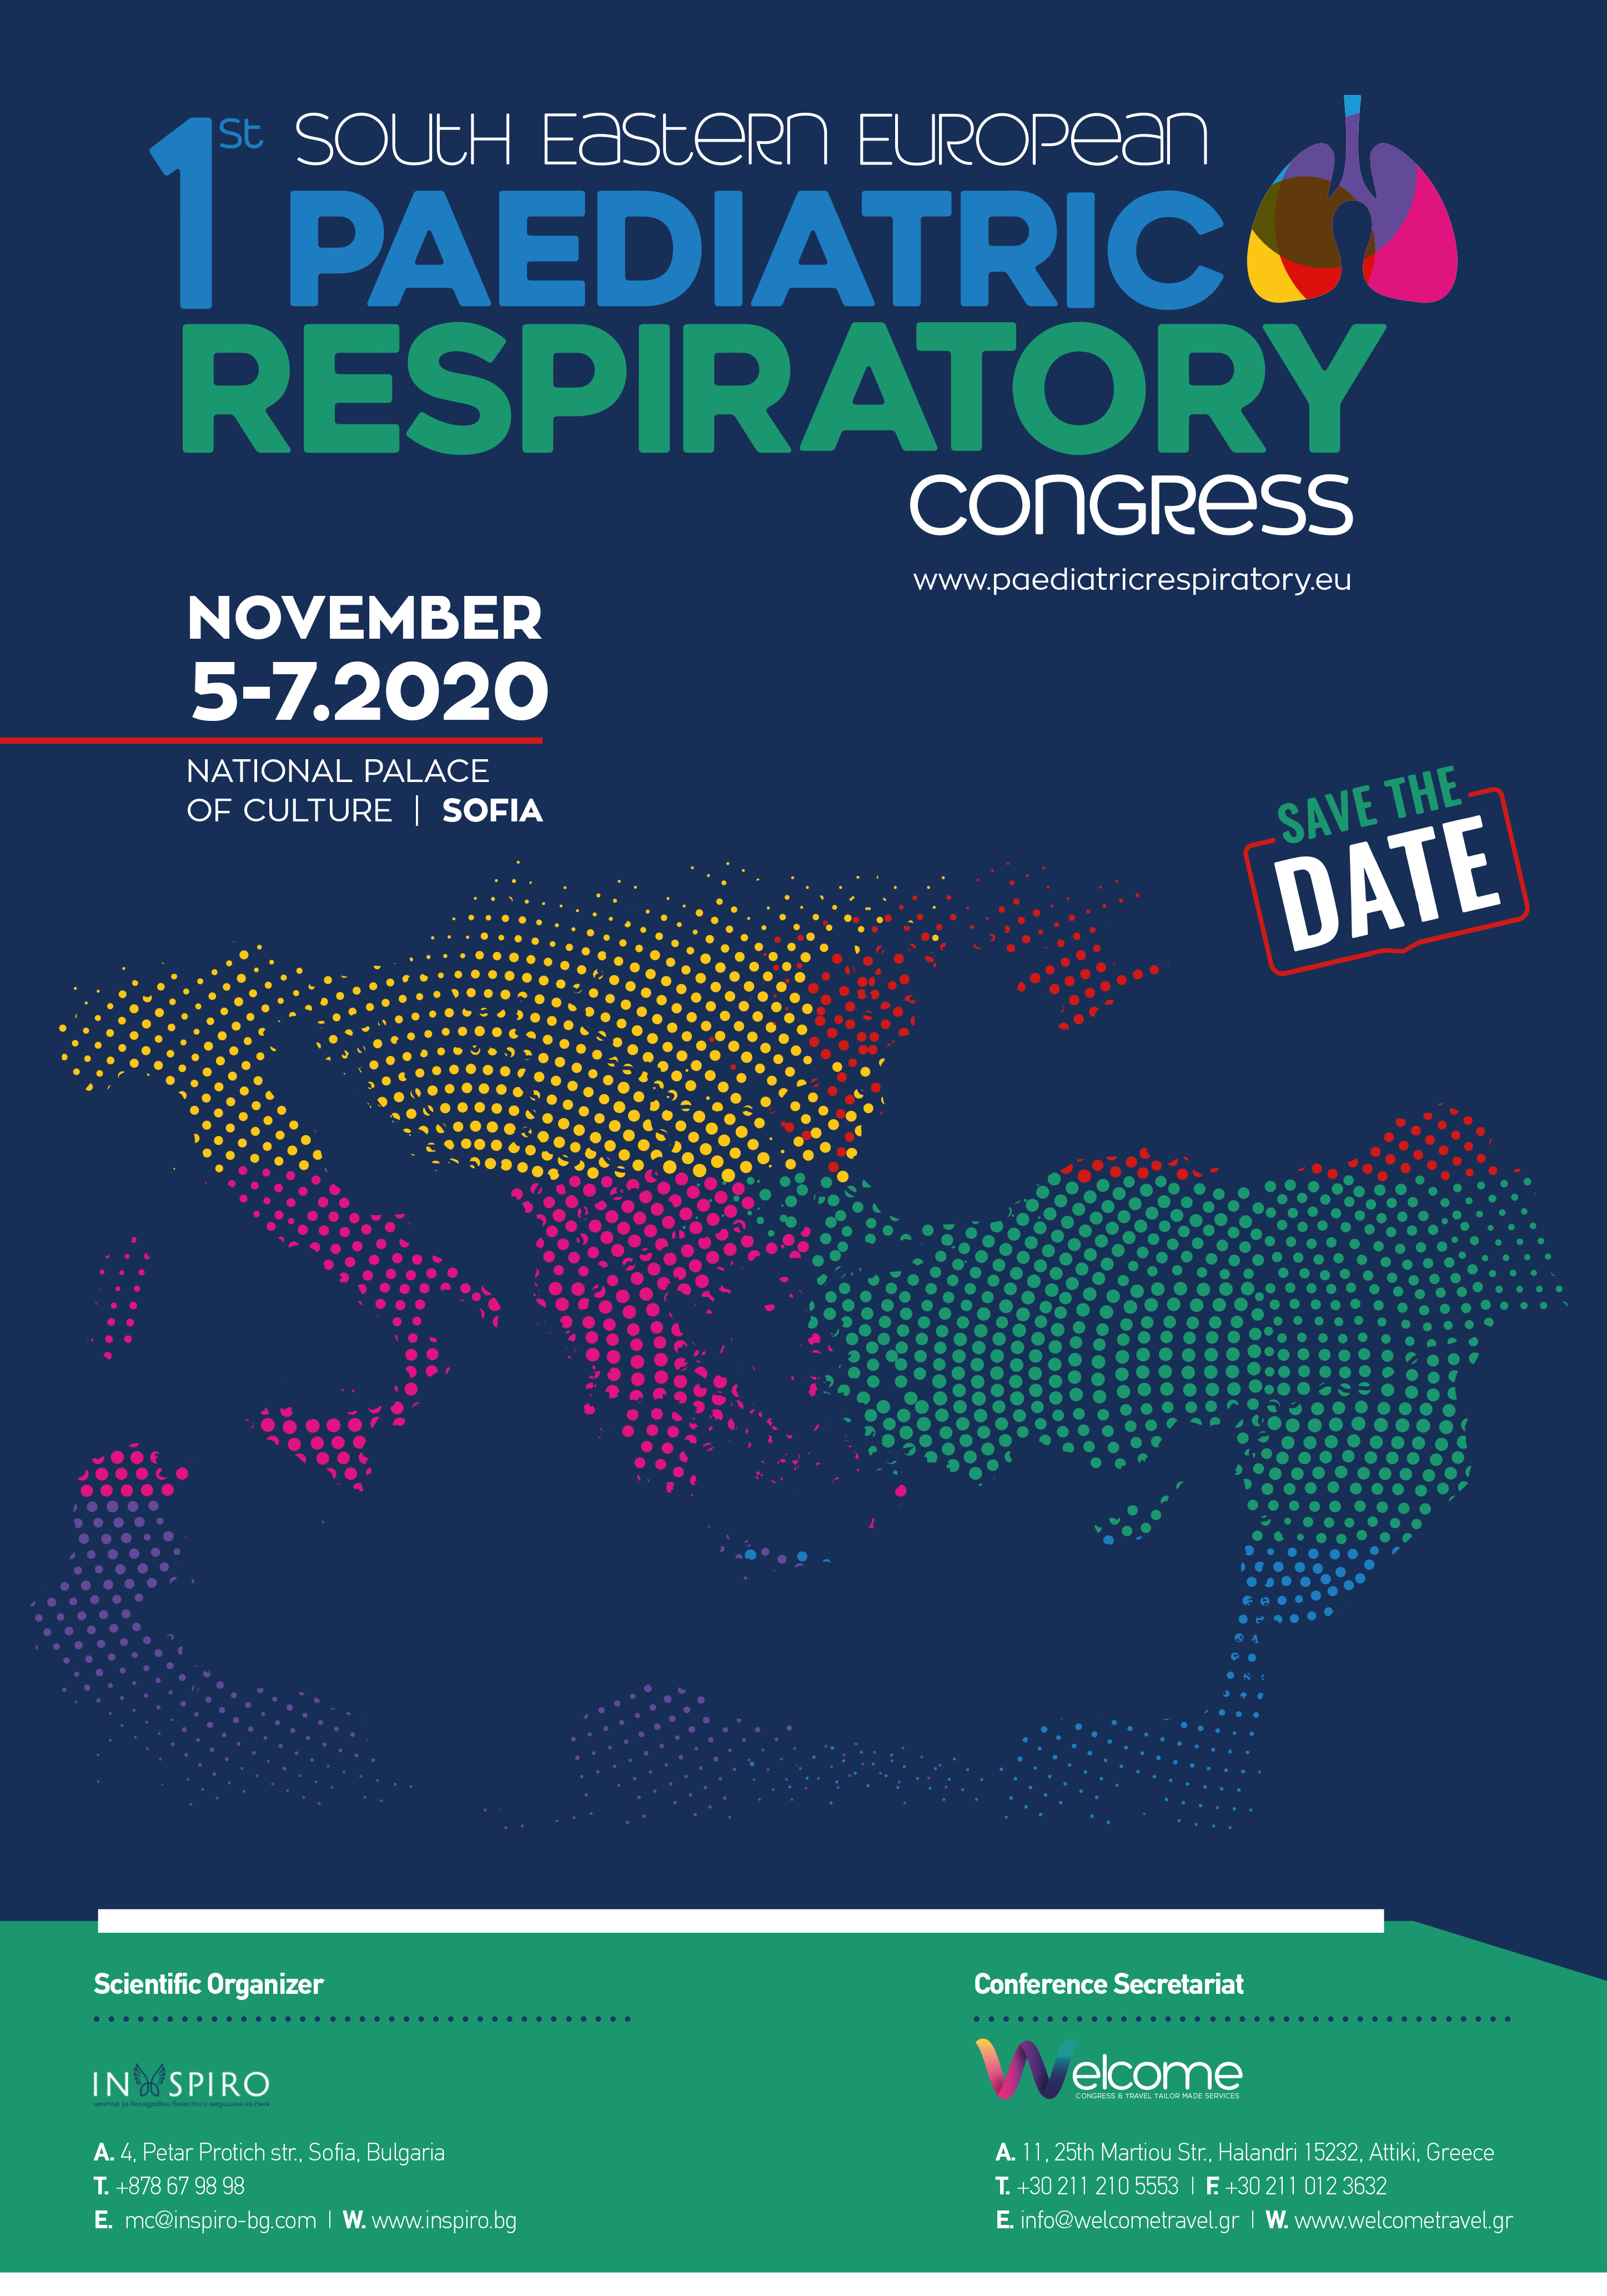 1st South Eastern European Paediatric Respiratory Congress